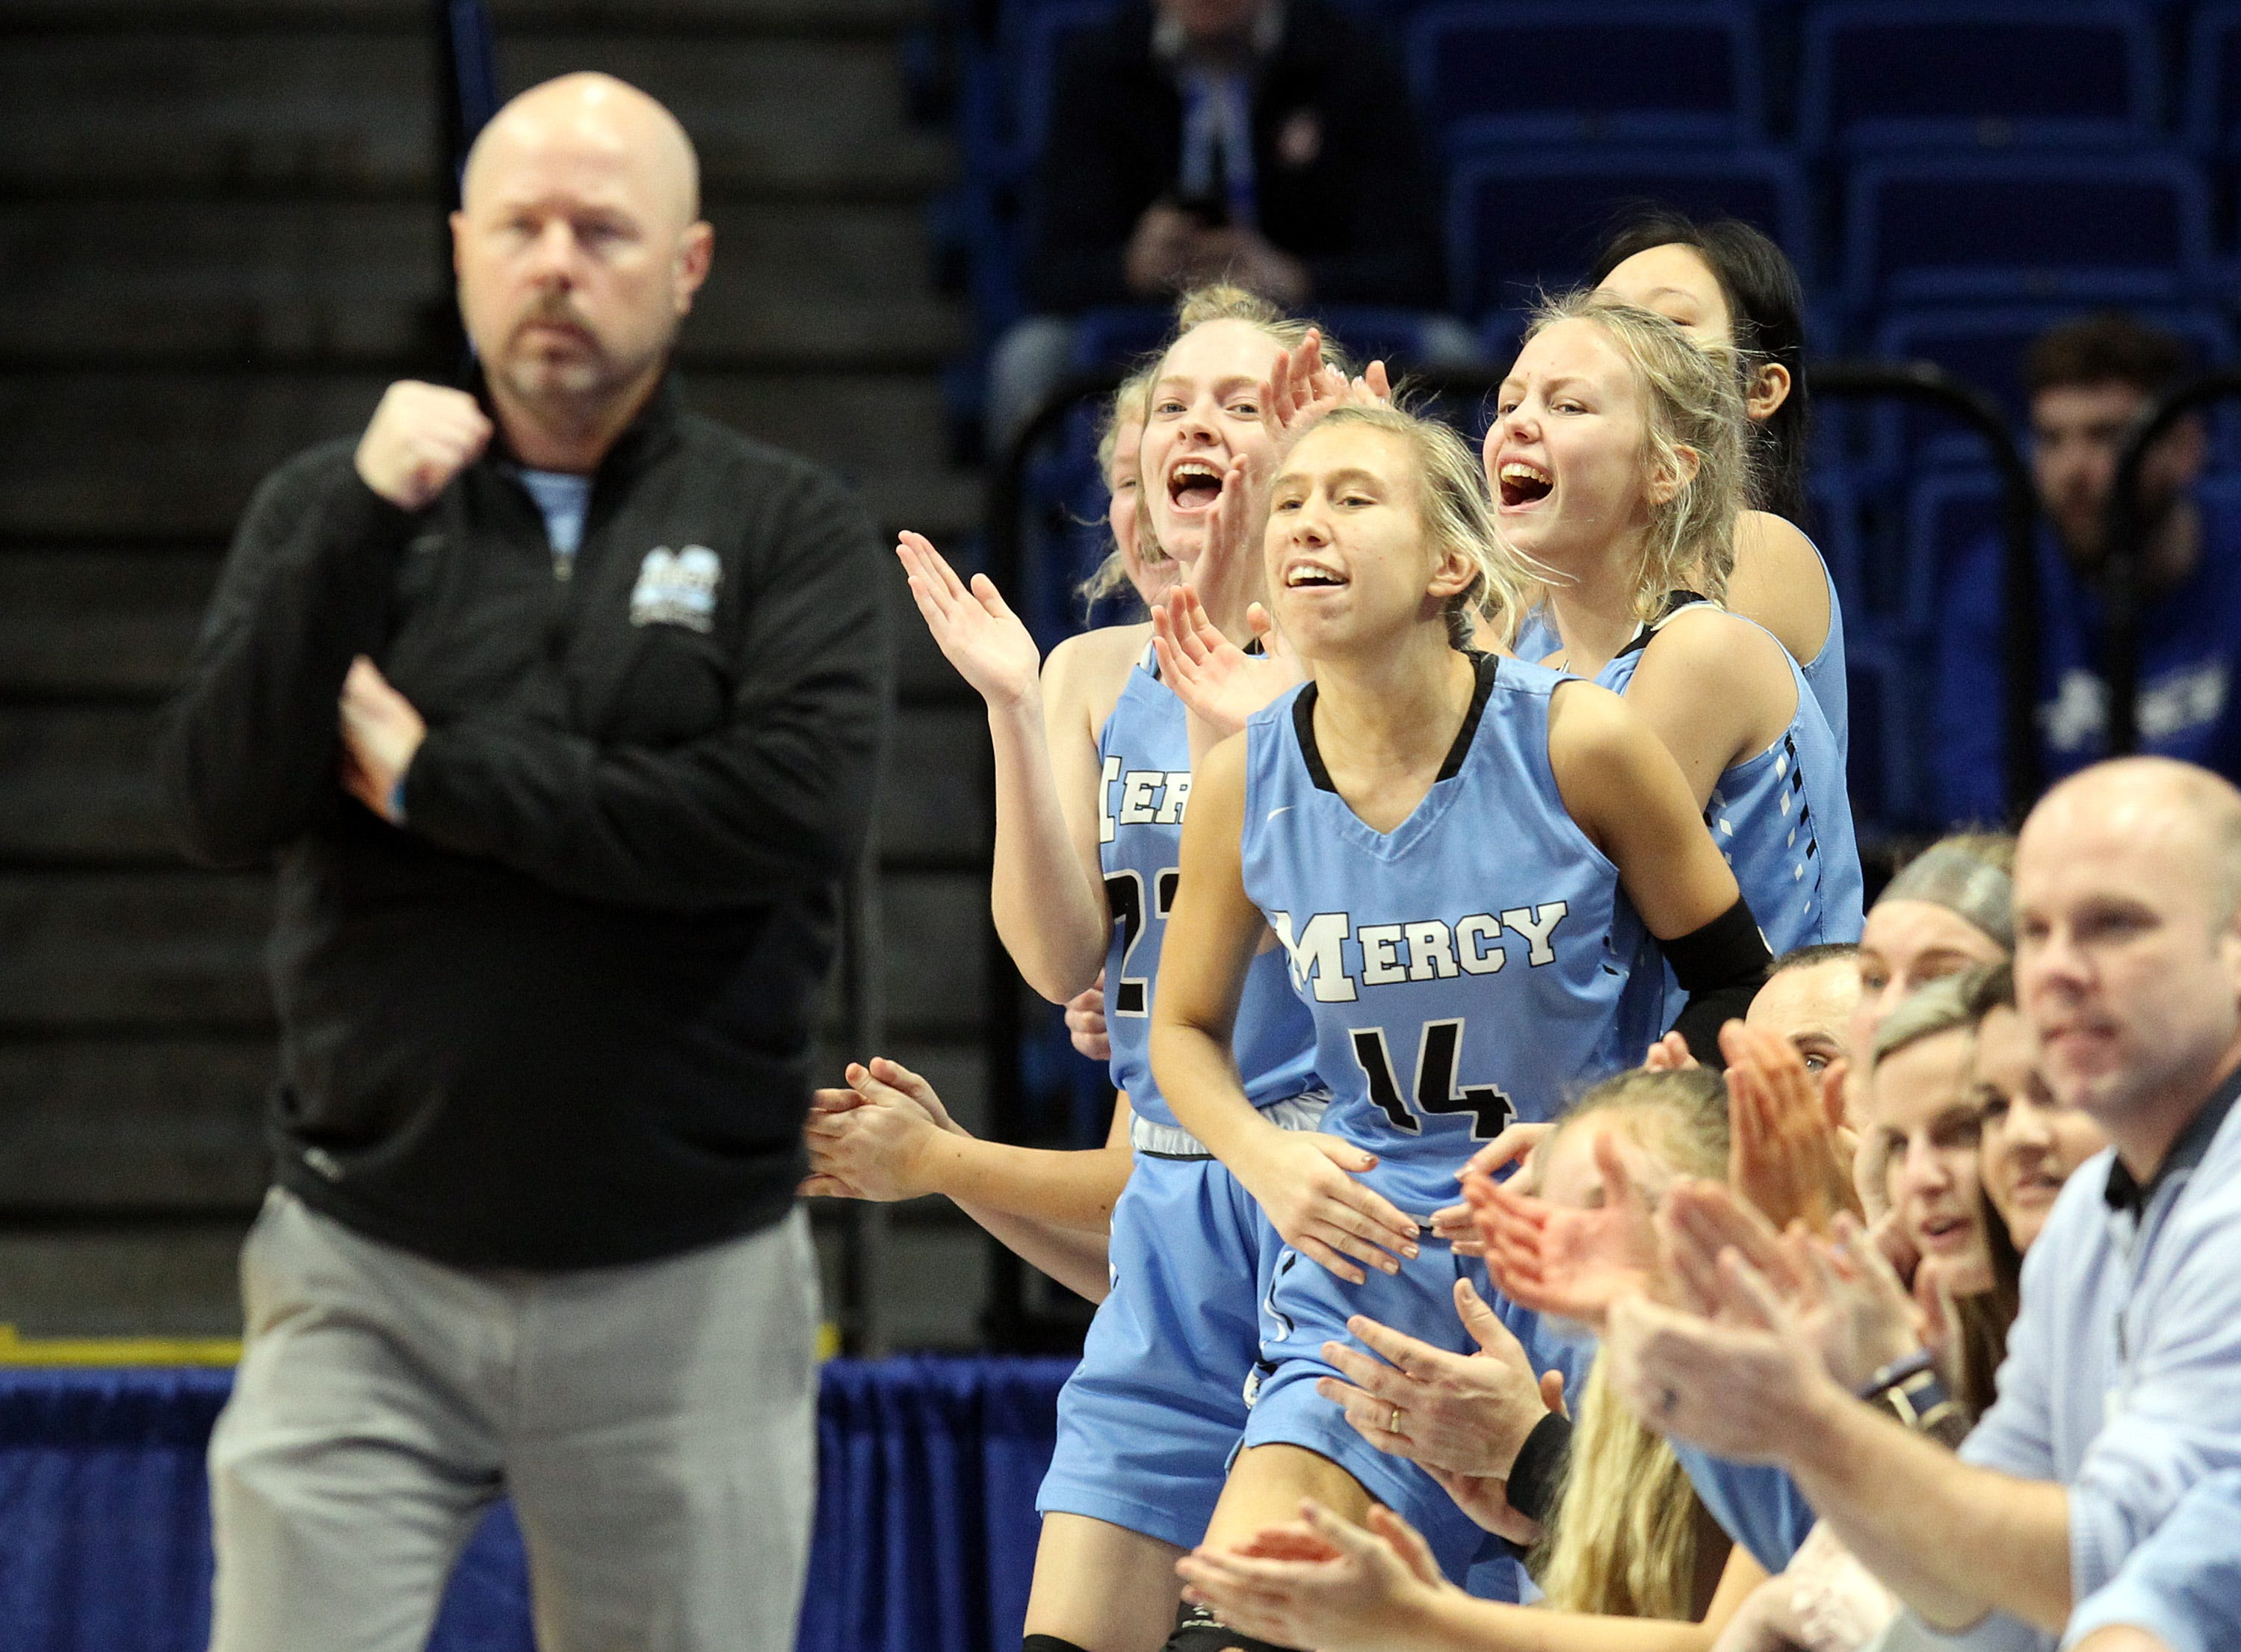 Mercy's bench reacts to a play in their opening round game against George Rogers Clark at the KHSAA Girl's Sweet 16, Wednesday, March 13.